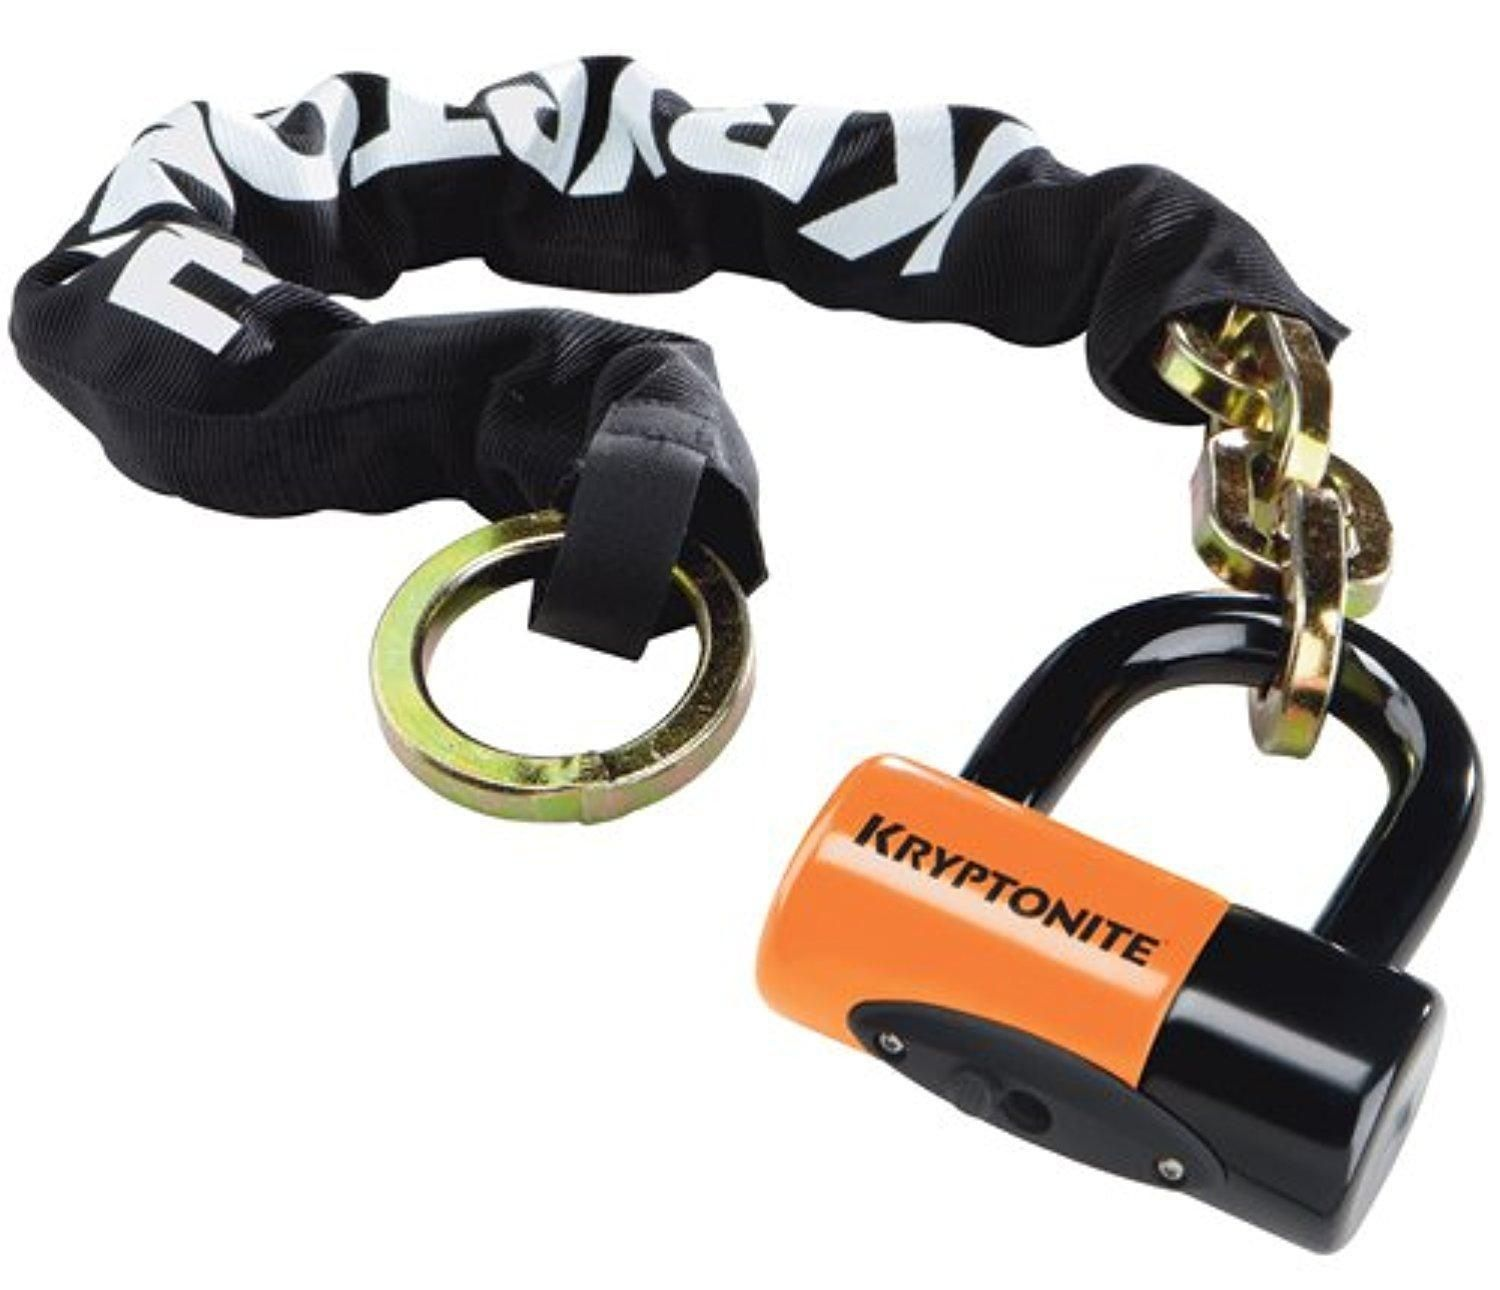 Аксессуар Kryptonite New York Noose 1275  (12 мм x 75 см) with EVS4 Disc 14 мм Shackle